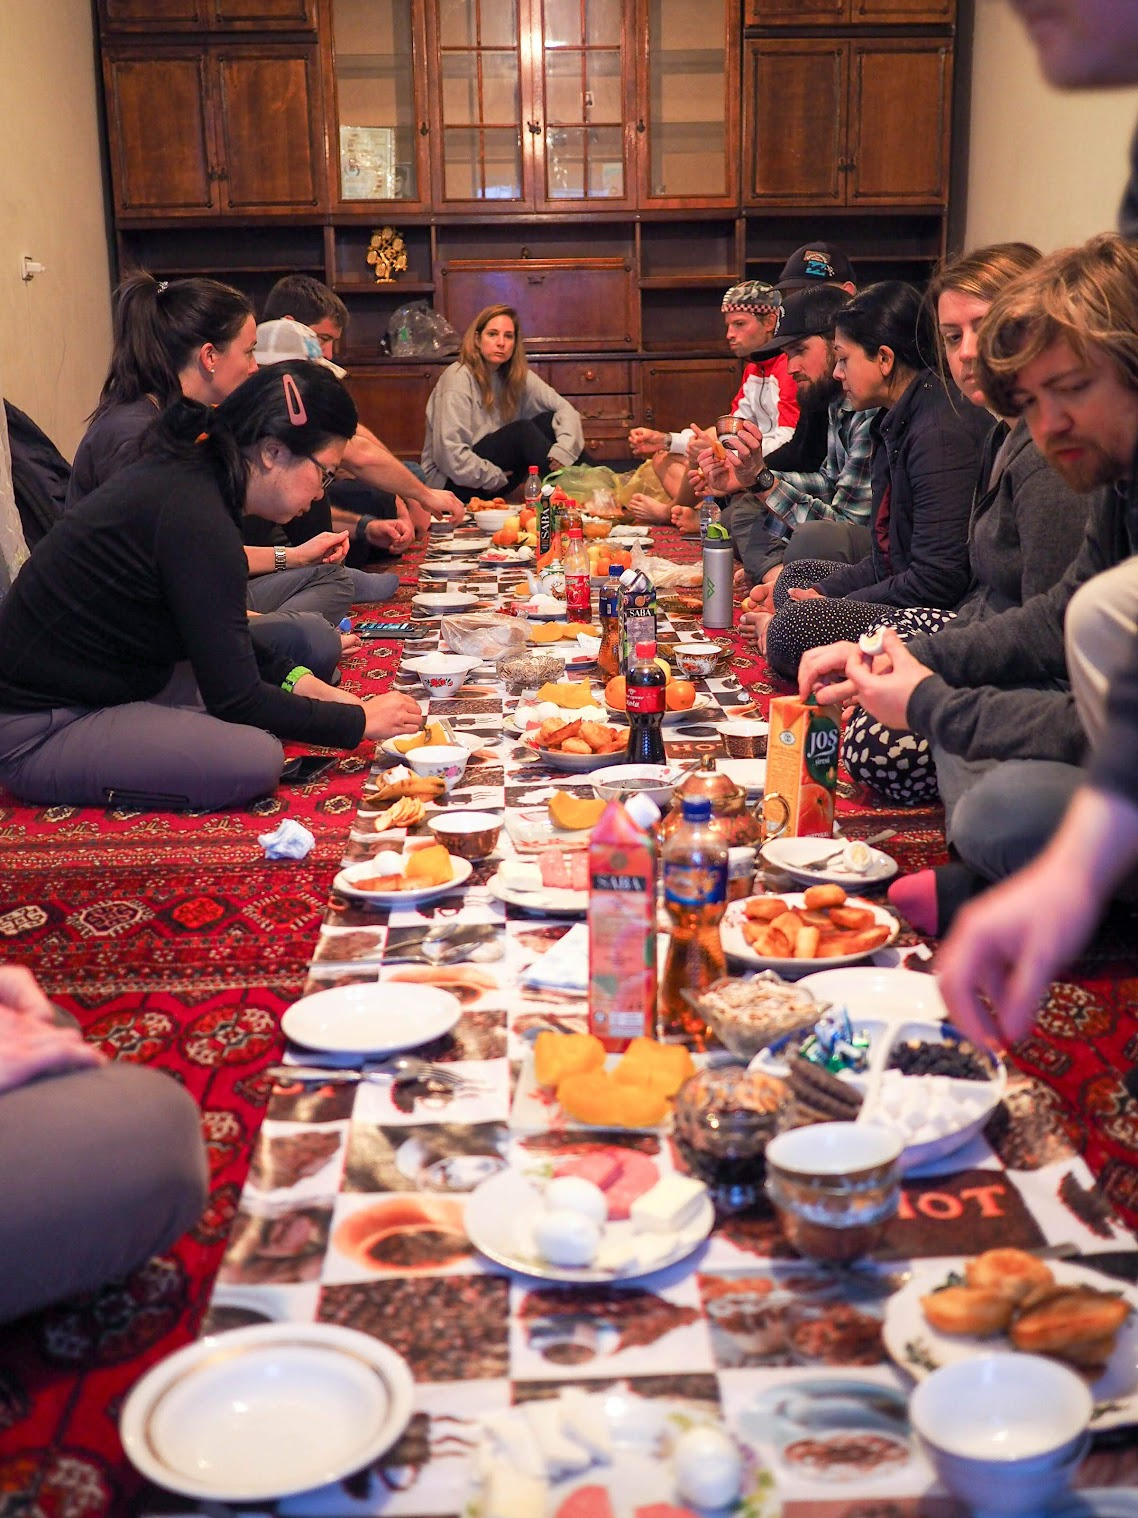 When eating at someone's home, we sit on the floor and the food is eaten off a table cloth laid on the floor as well. Turkmenistan home in general seemed to be empty of furniture.